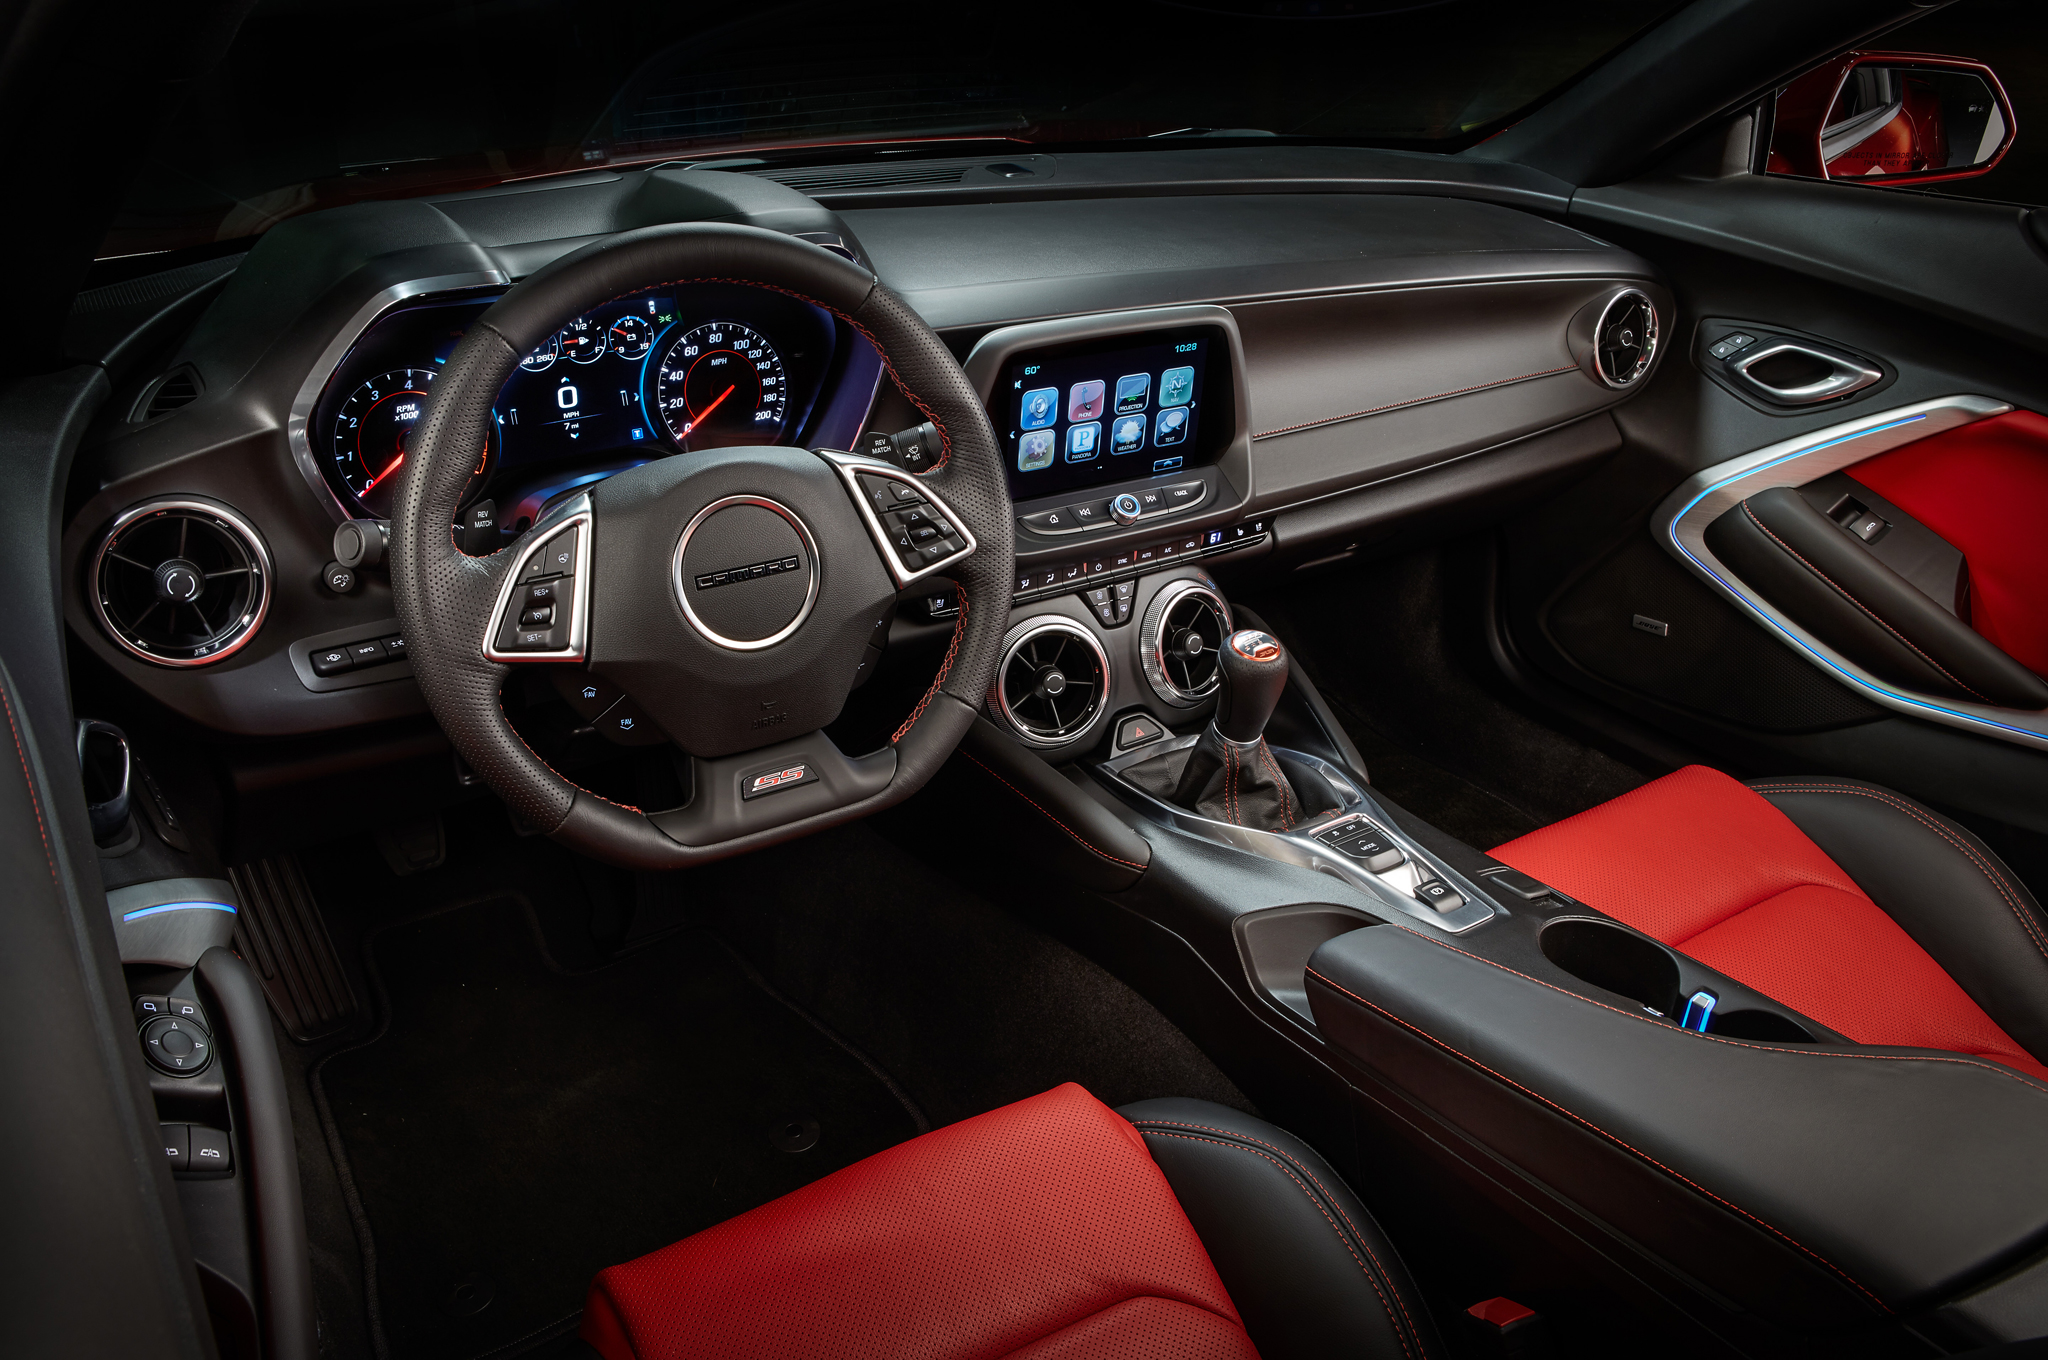 2016 Chevrolet Camaro Ss Cockpit Interior (Photo 45 of 54)